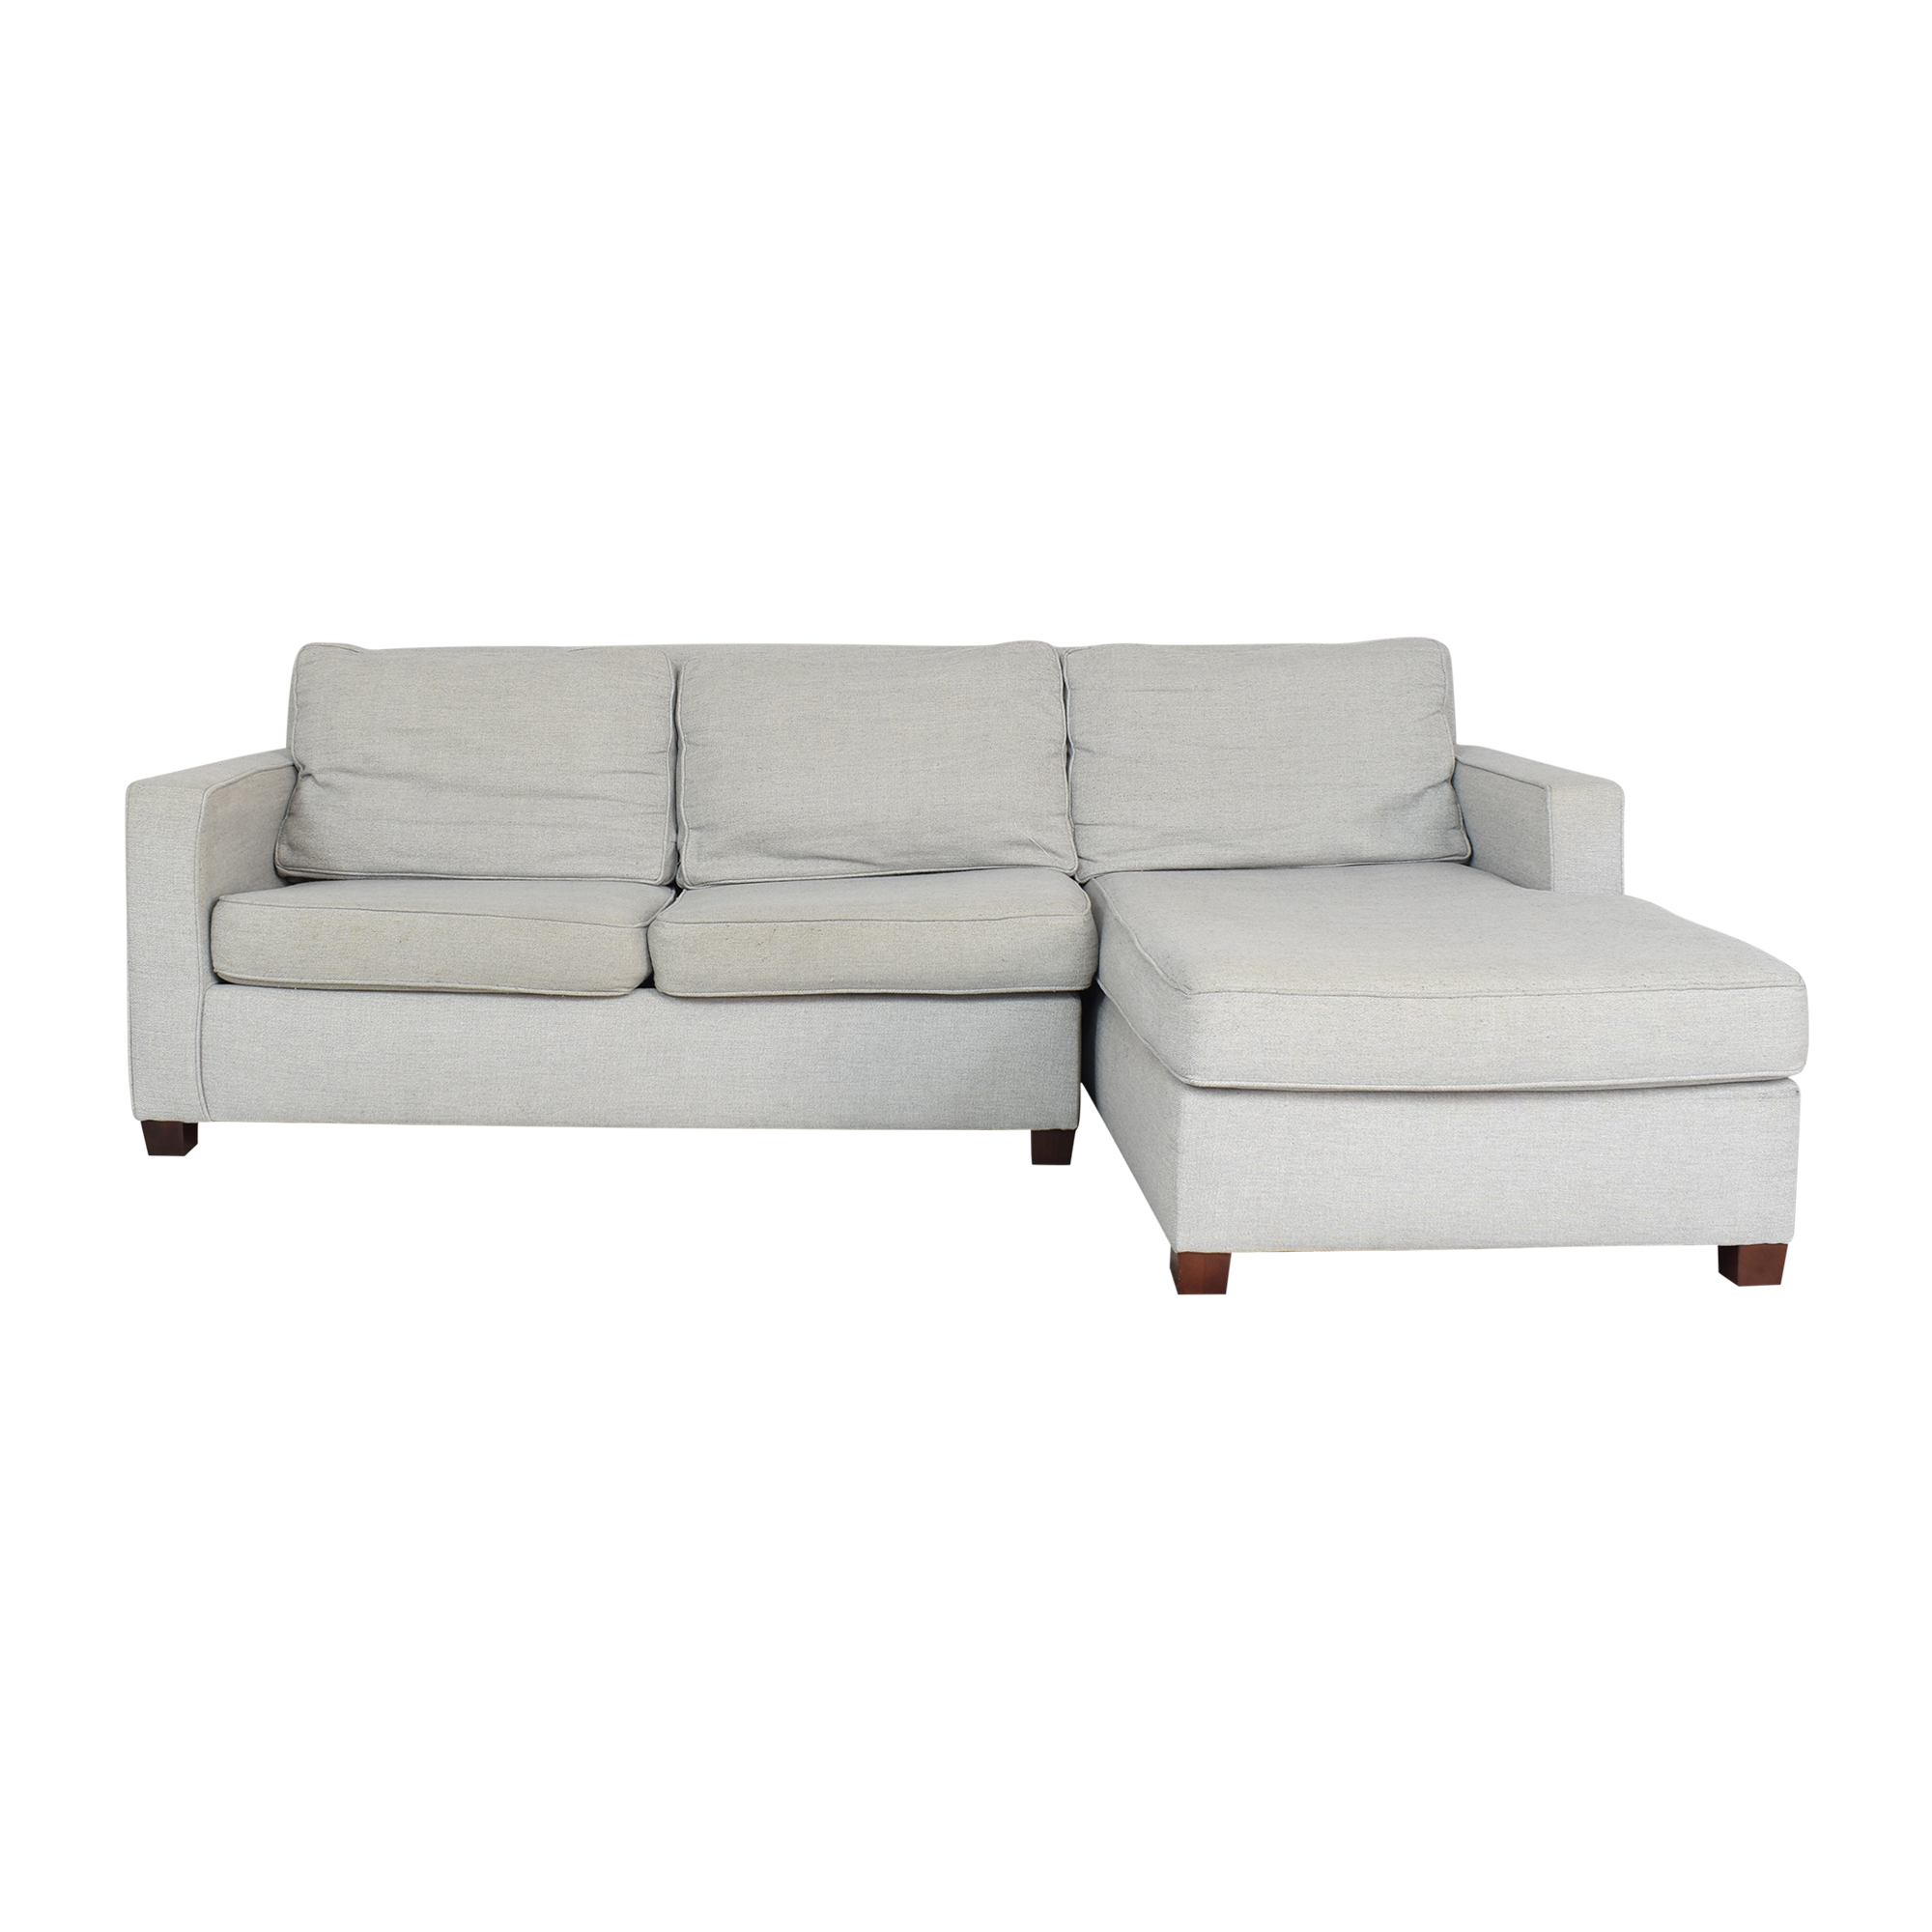 West Elm West Elm Henry Two Piece Sectional Sofa second hand